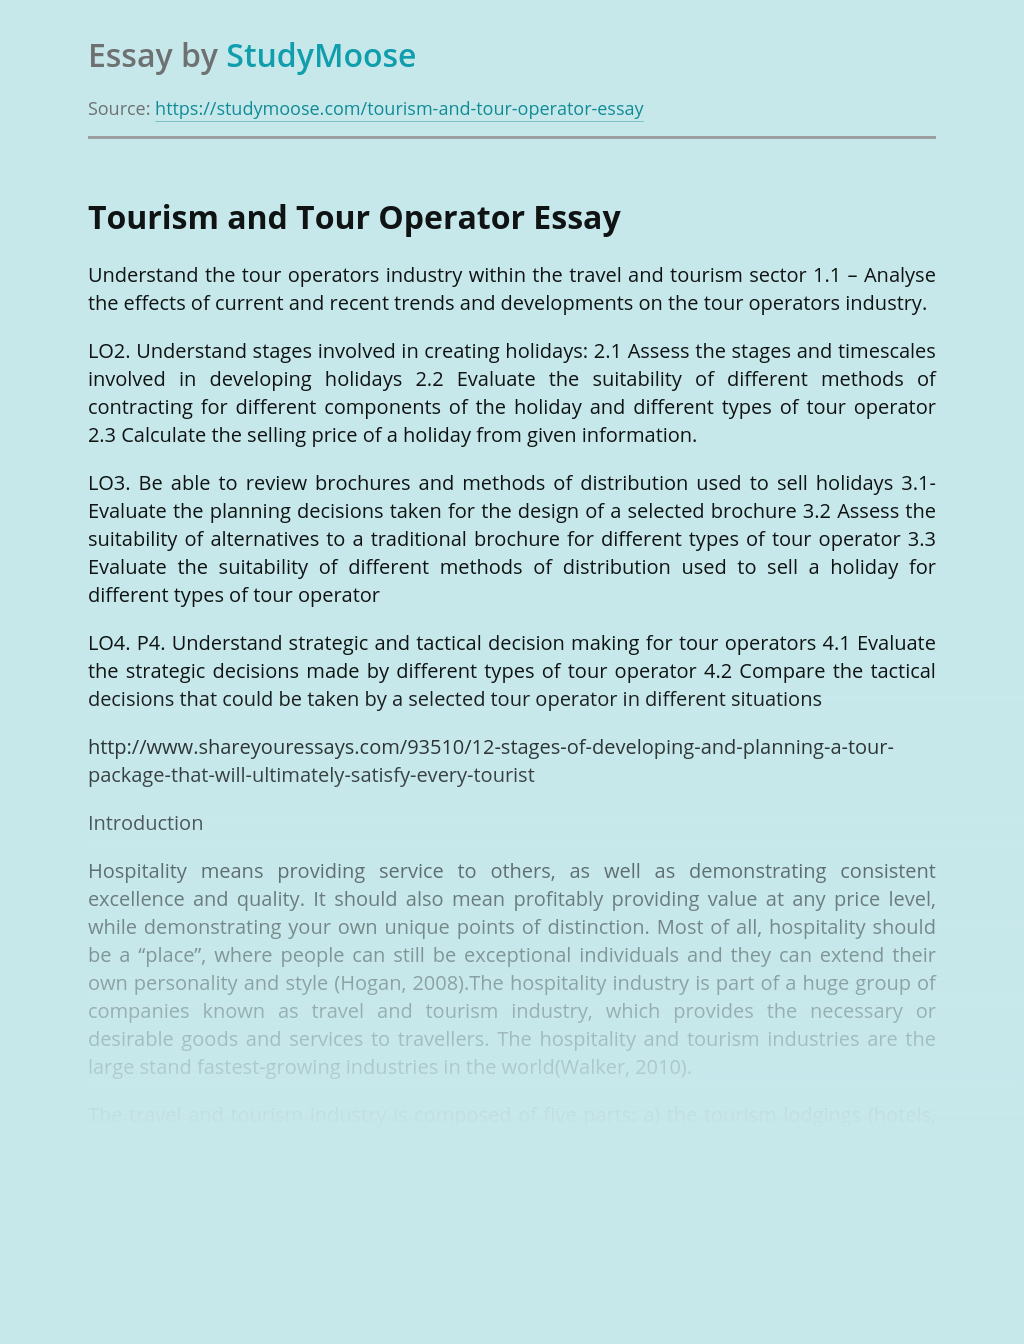 Tourism and Tour Operator